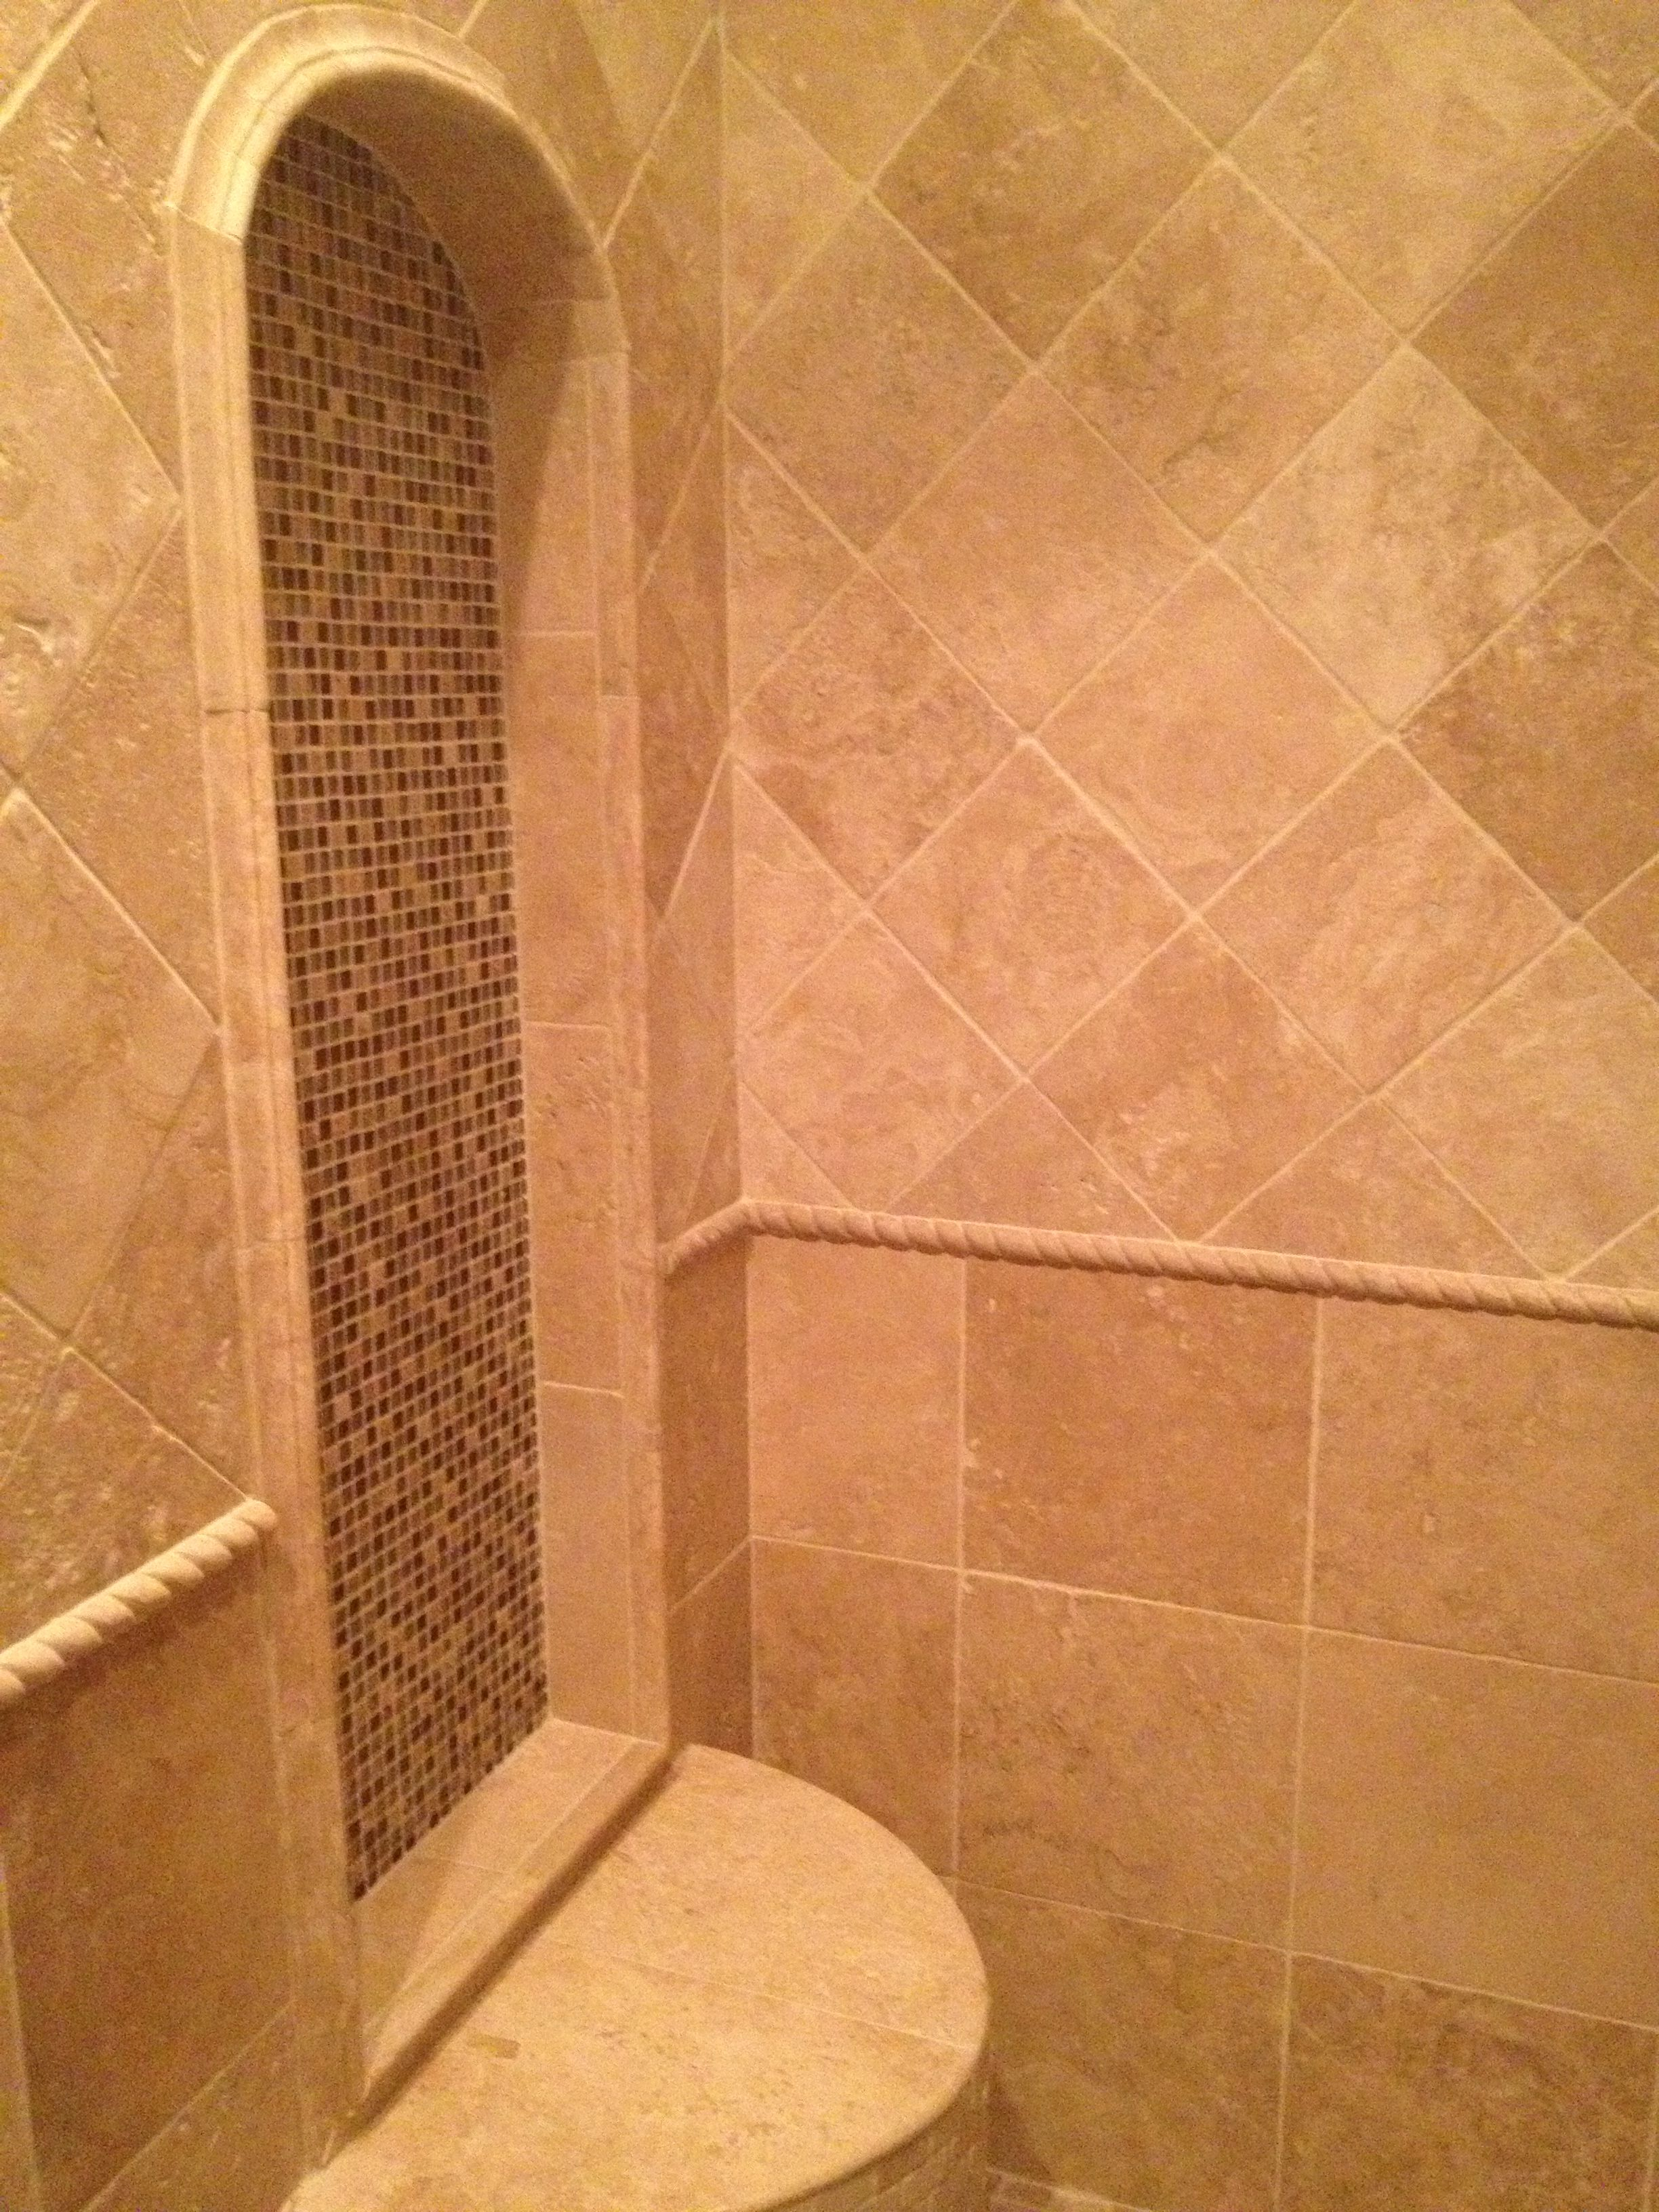 Travertine Bathrooms Pictures custom travertine shower bench with arched niche and rope trim